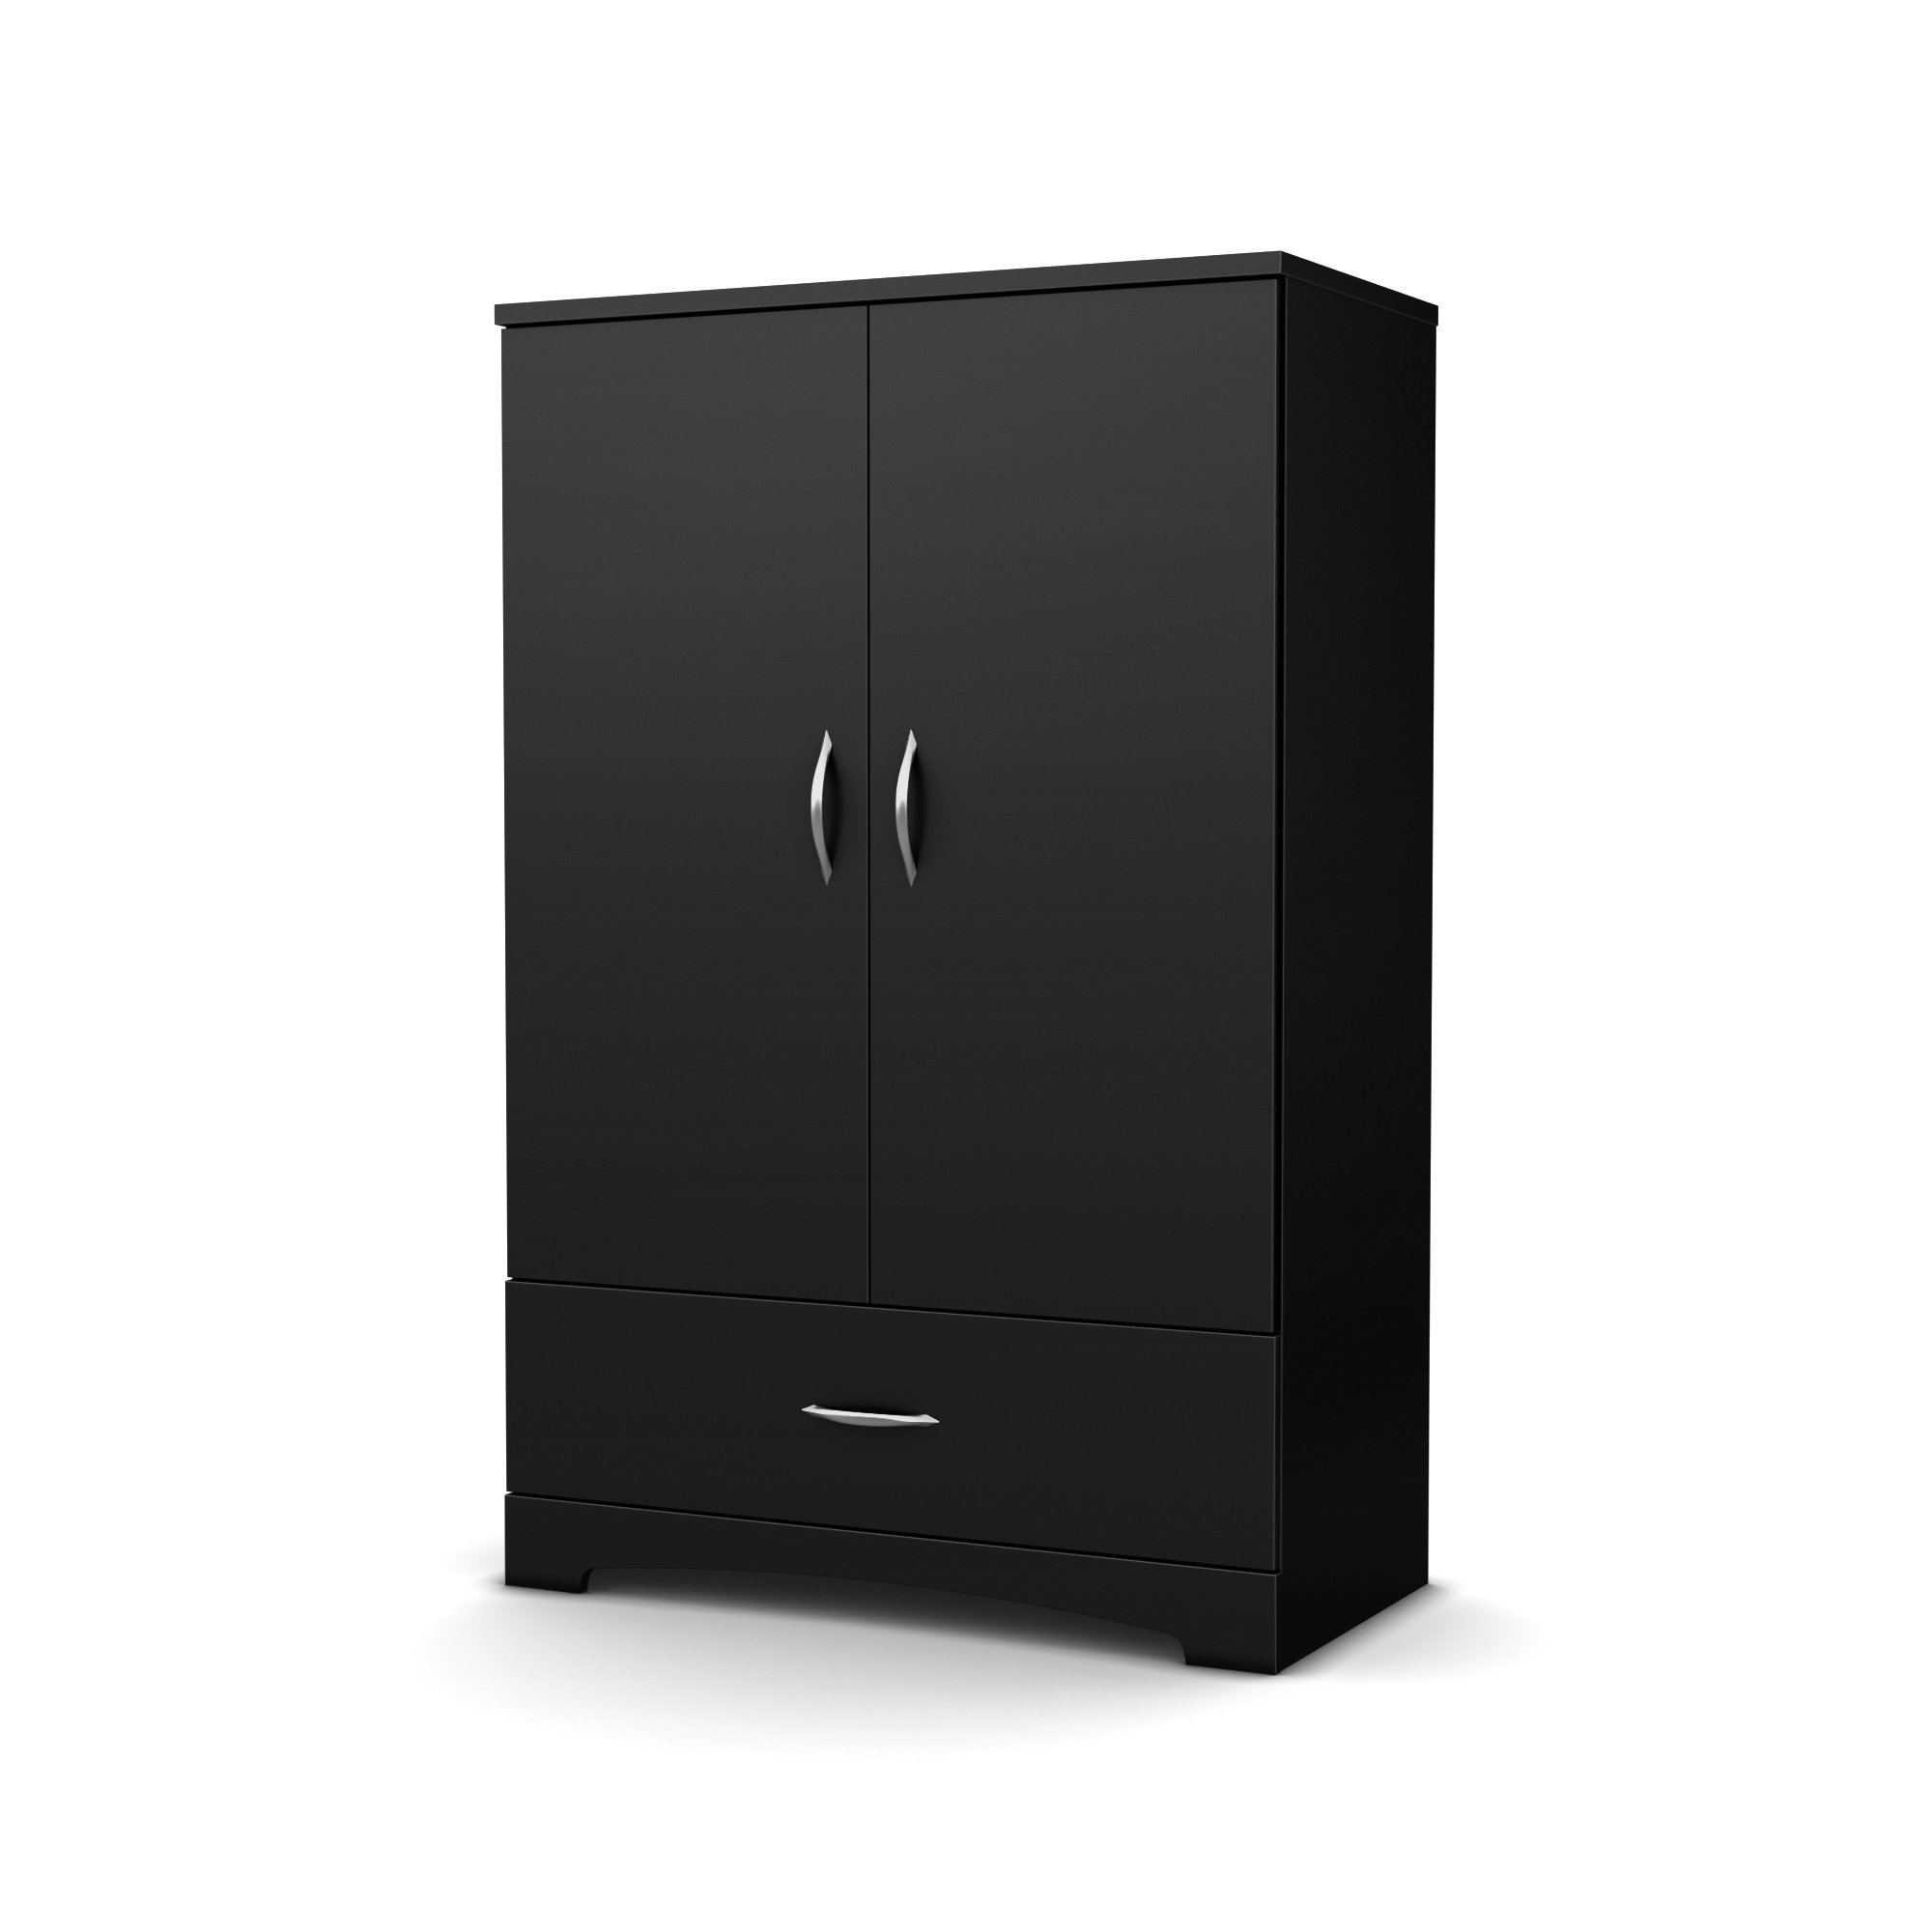 South Shore 2-Door Armoire with Adjustable Shelves and Storage Drawers, Pure Black by South Shore